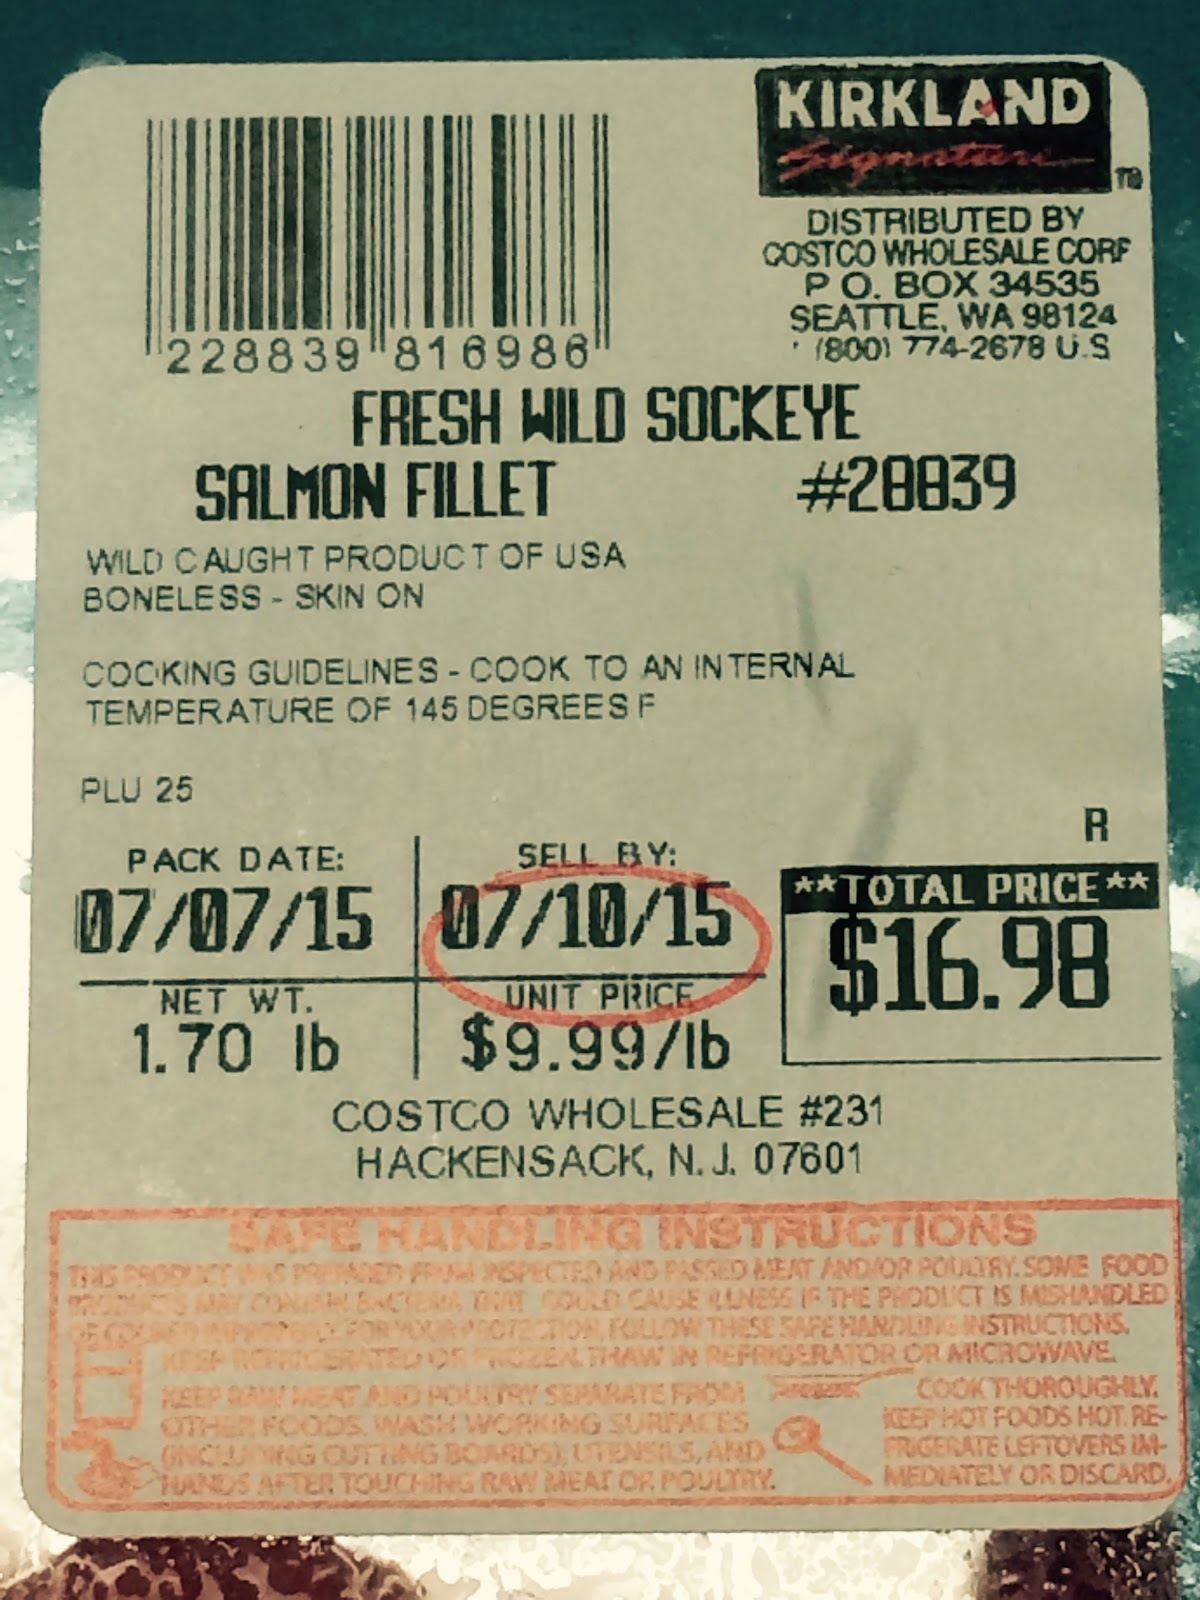 do you really know what you re eating at costco whole price the price for wild sockeye salmon at costco whole in hackensack dropped to 9 99 a pound this week from 13 99 a pound on 23